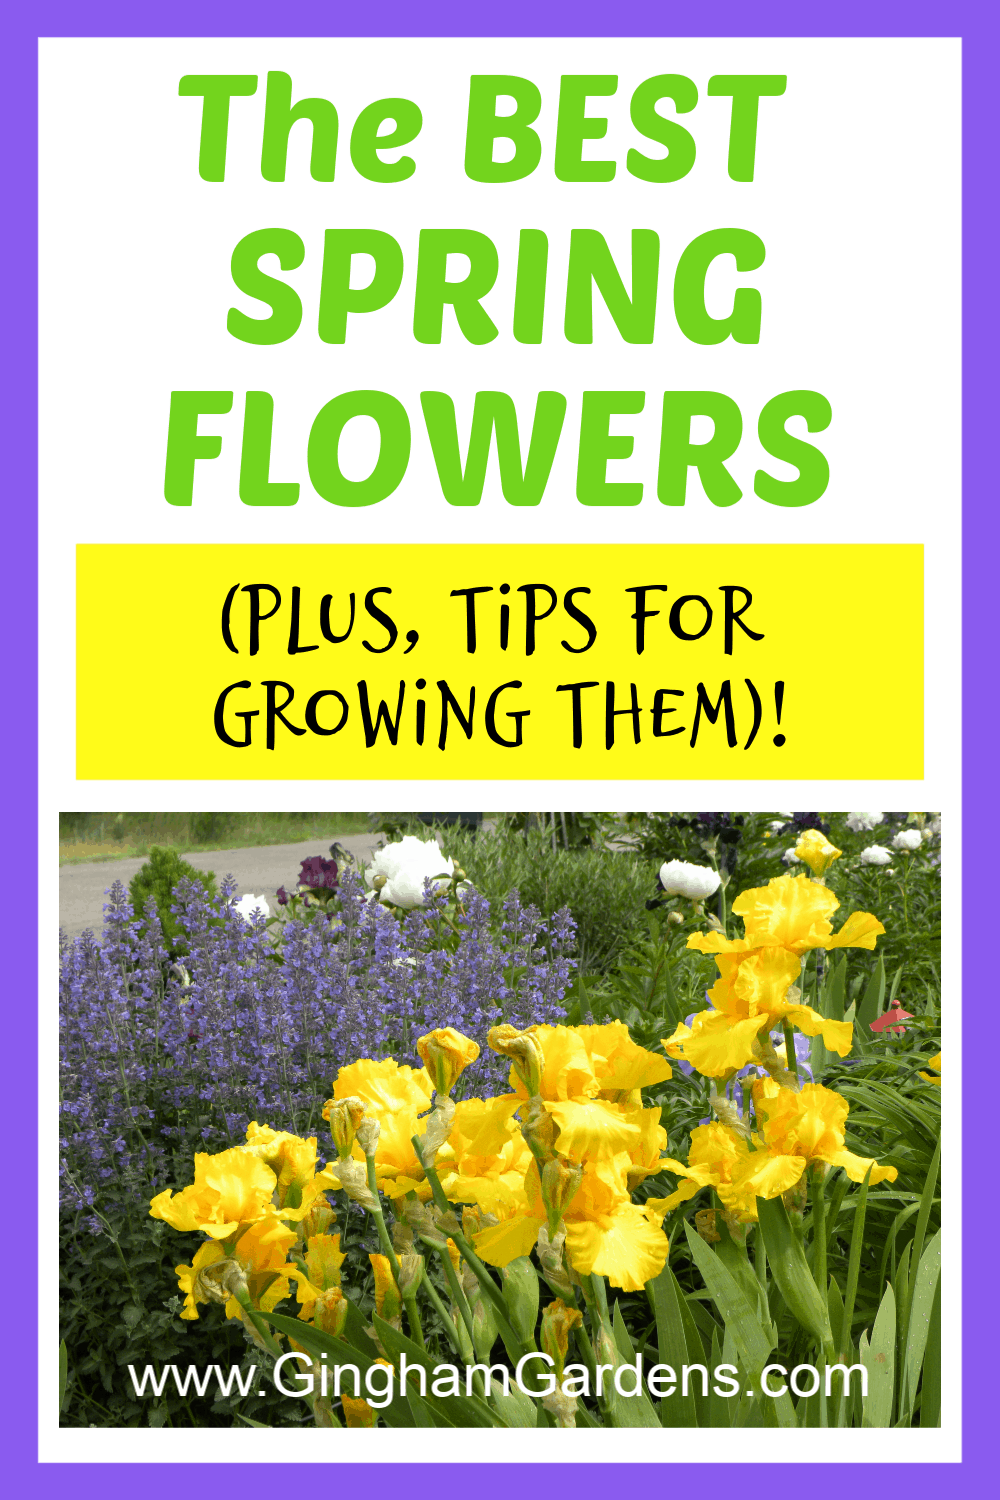 Image of Flowers with text overlay - The Best Spring Flowers and tips for growing them